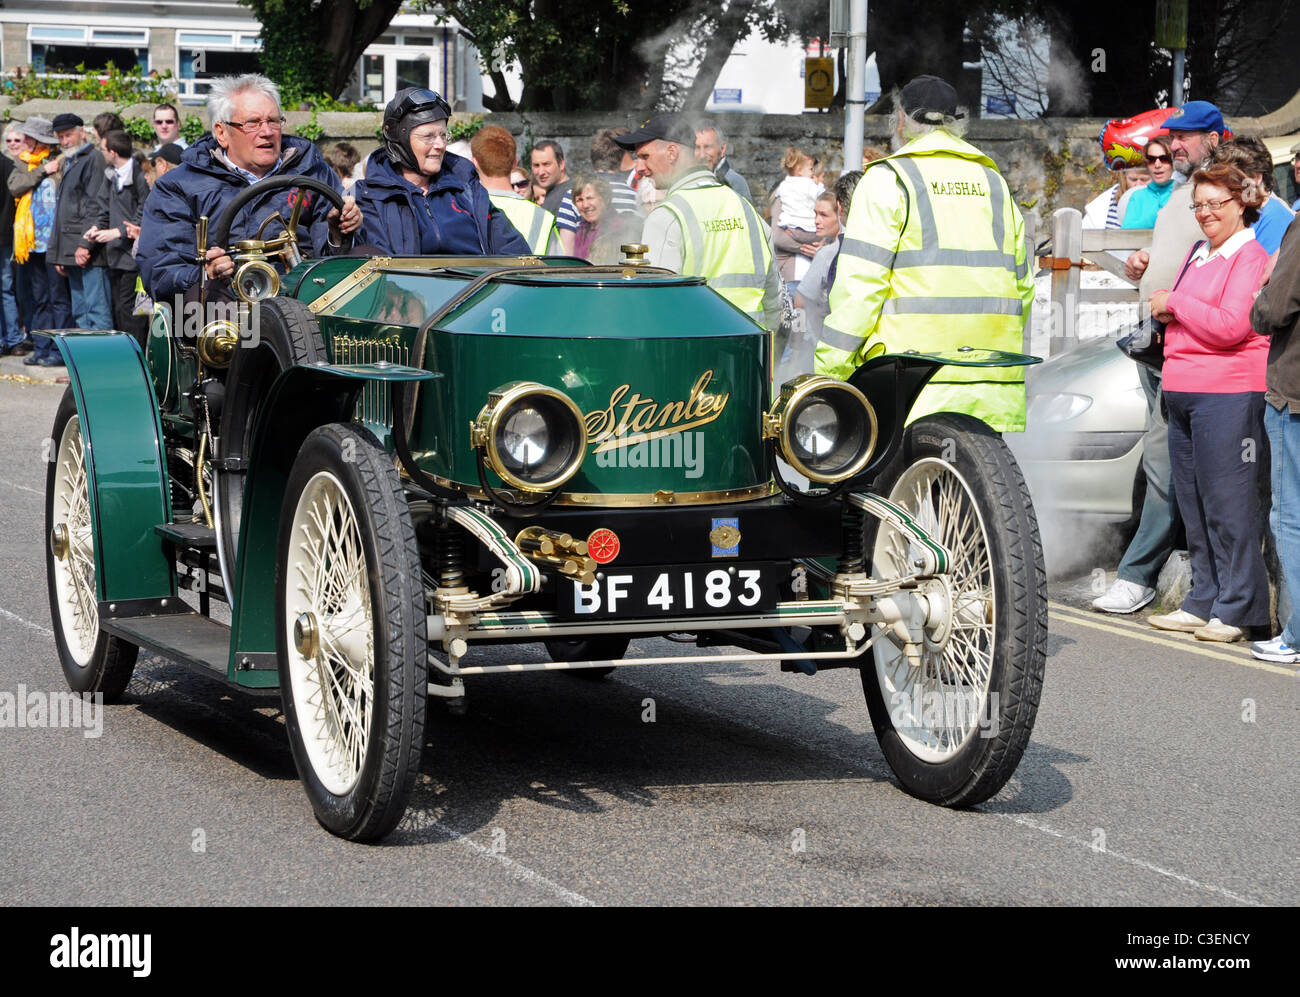 A Vintage Stanley Steam Car In The Annual Trevithick Day Steam Parade At Camborne In Cornwall Uk